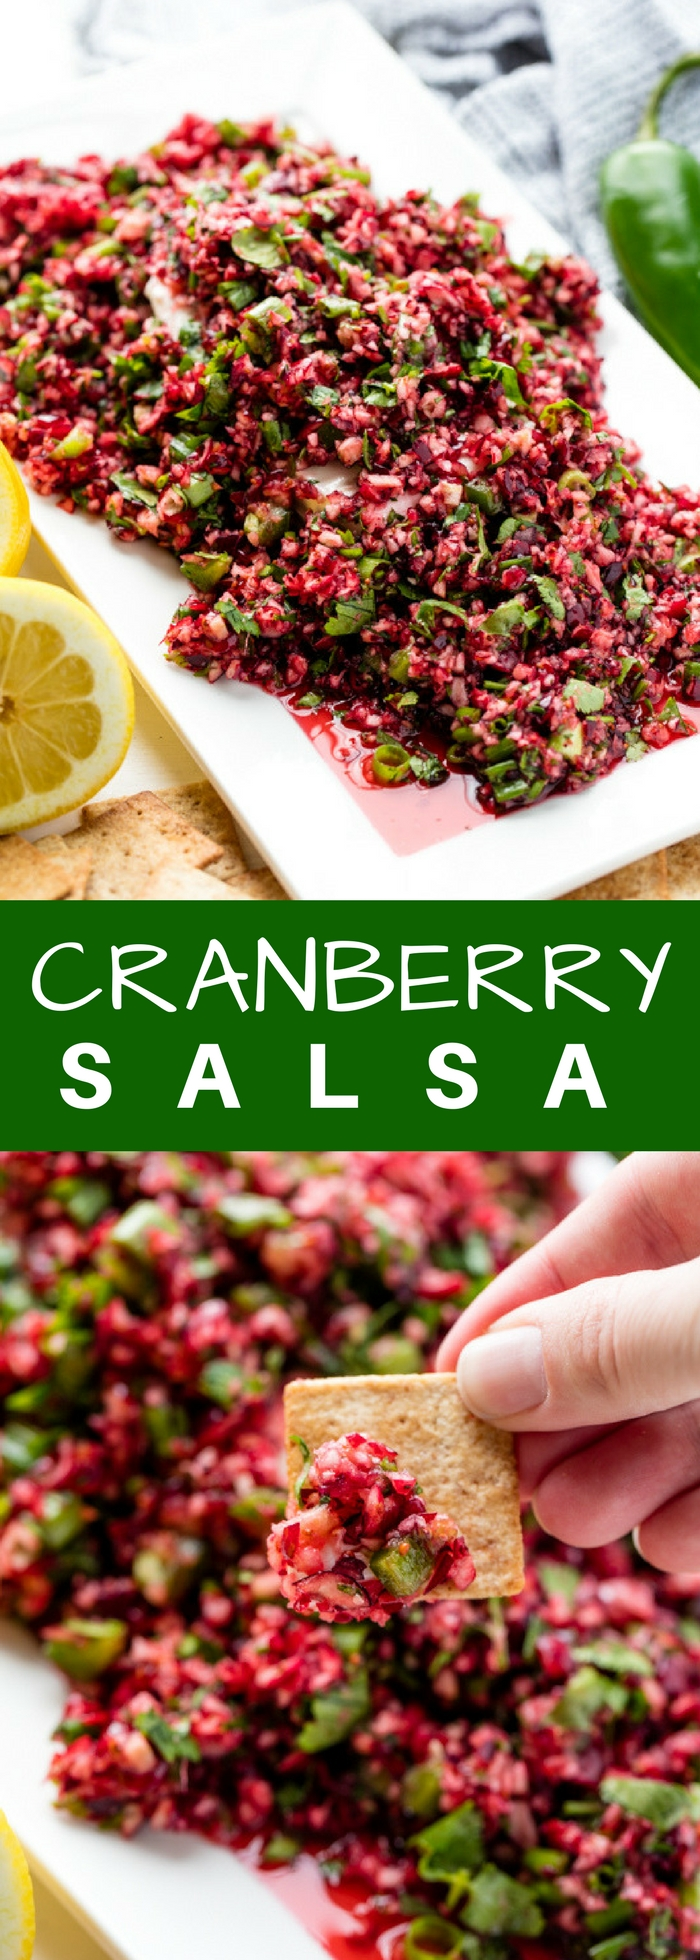 Cranberry Salsa is an amazing holiday appetizer that is pretty taste served over cream cheese. Fresh cranberries are minced up with jalapeno into a healthy, fresh, and vibrant salsa.